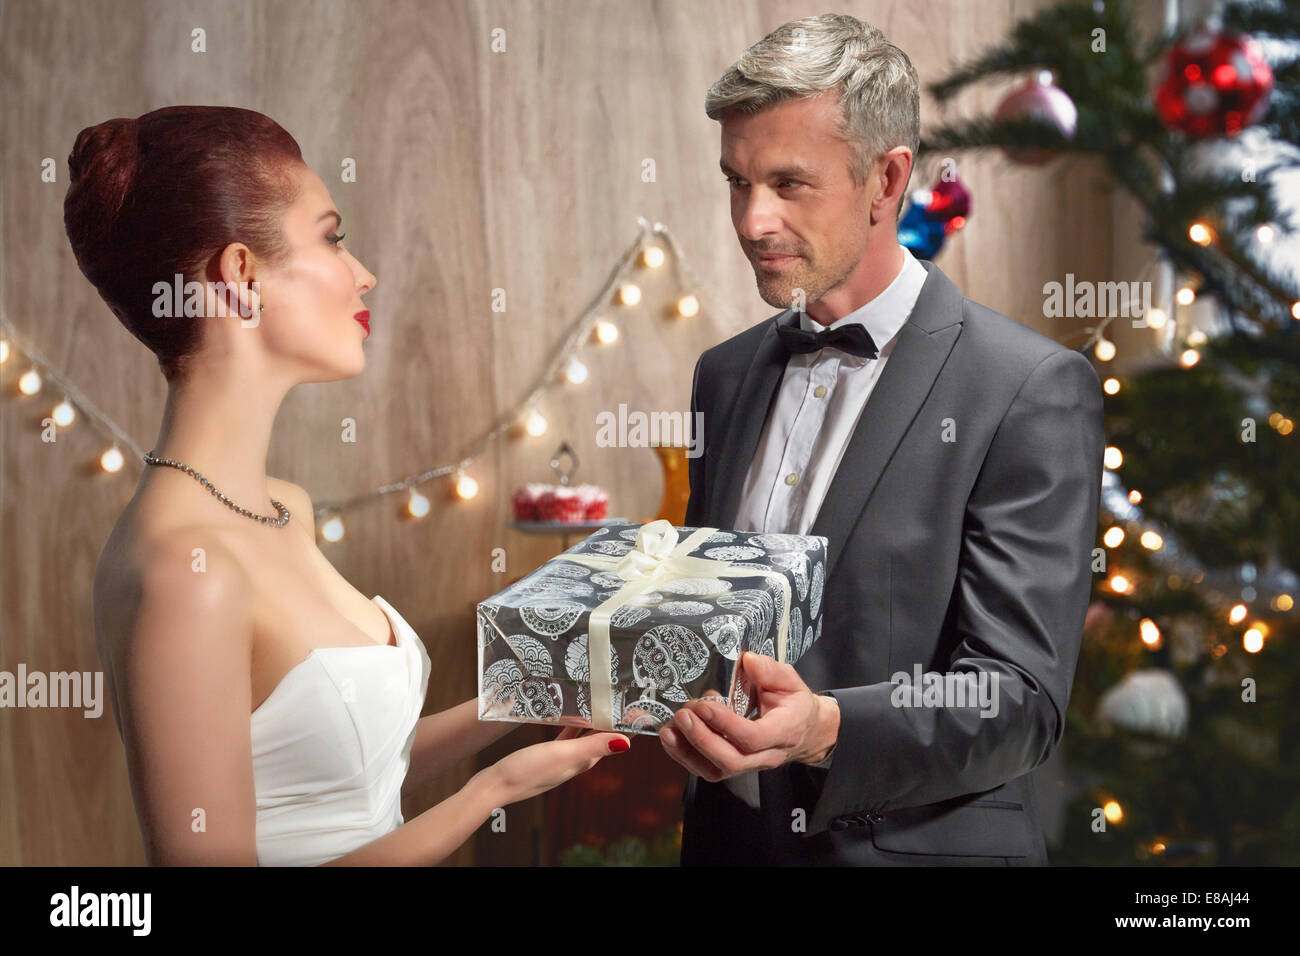 Husband and wife with Christmas gift - Stock Image